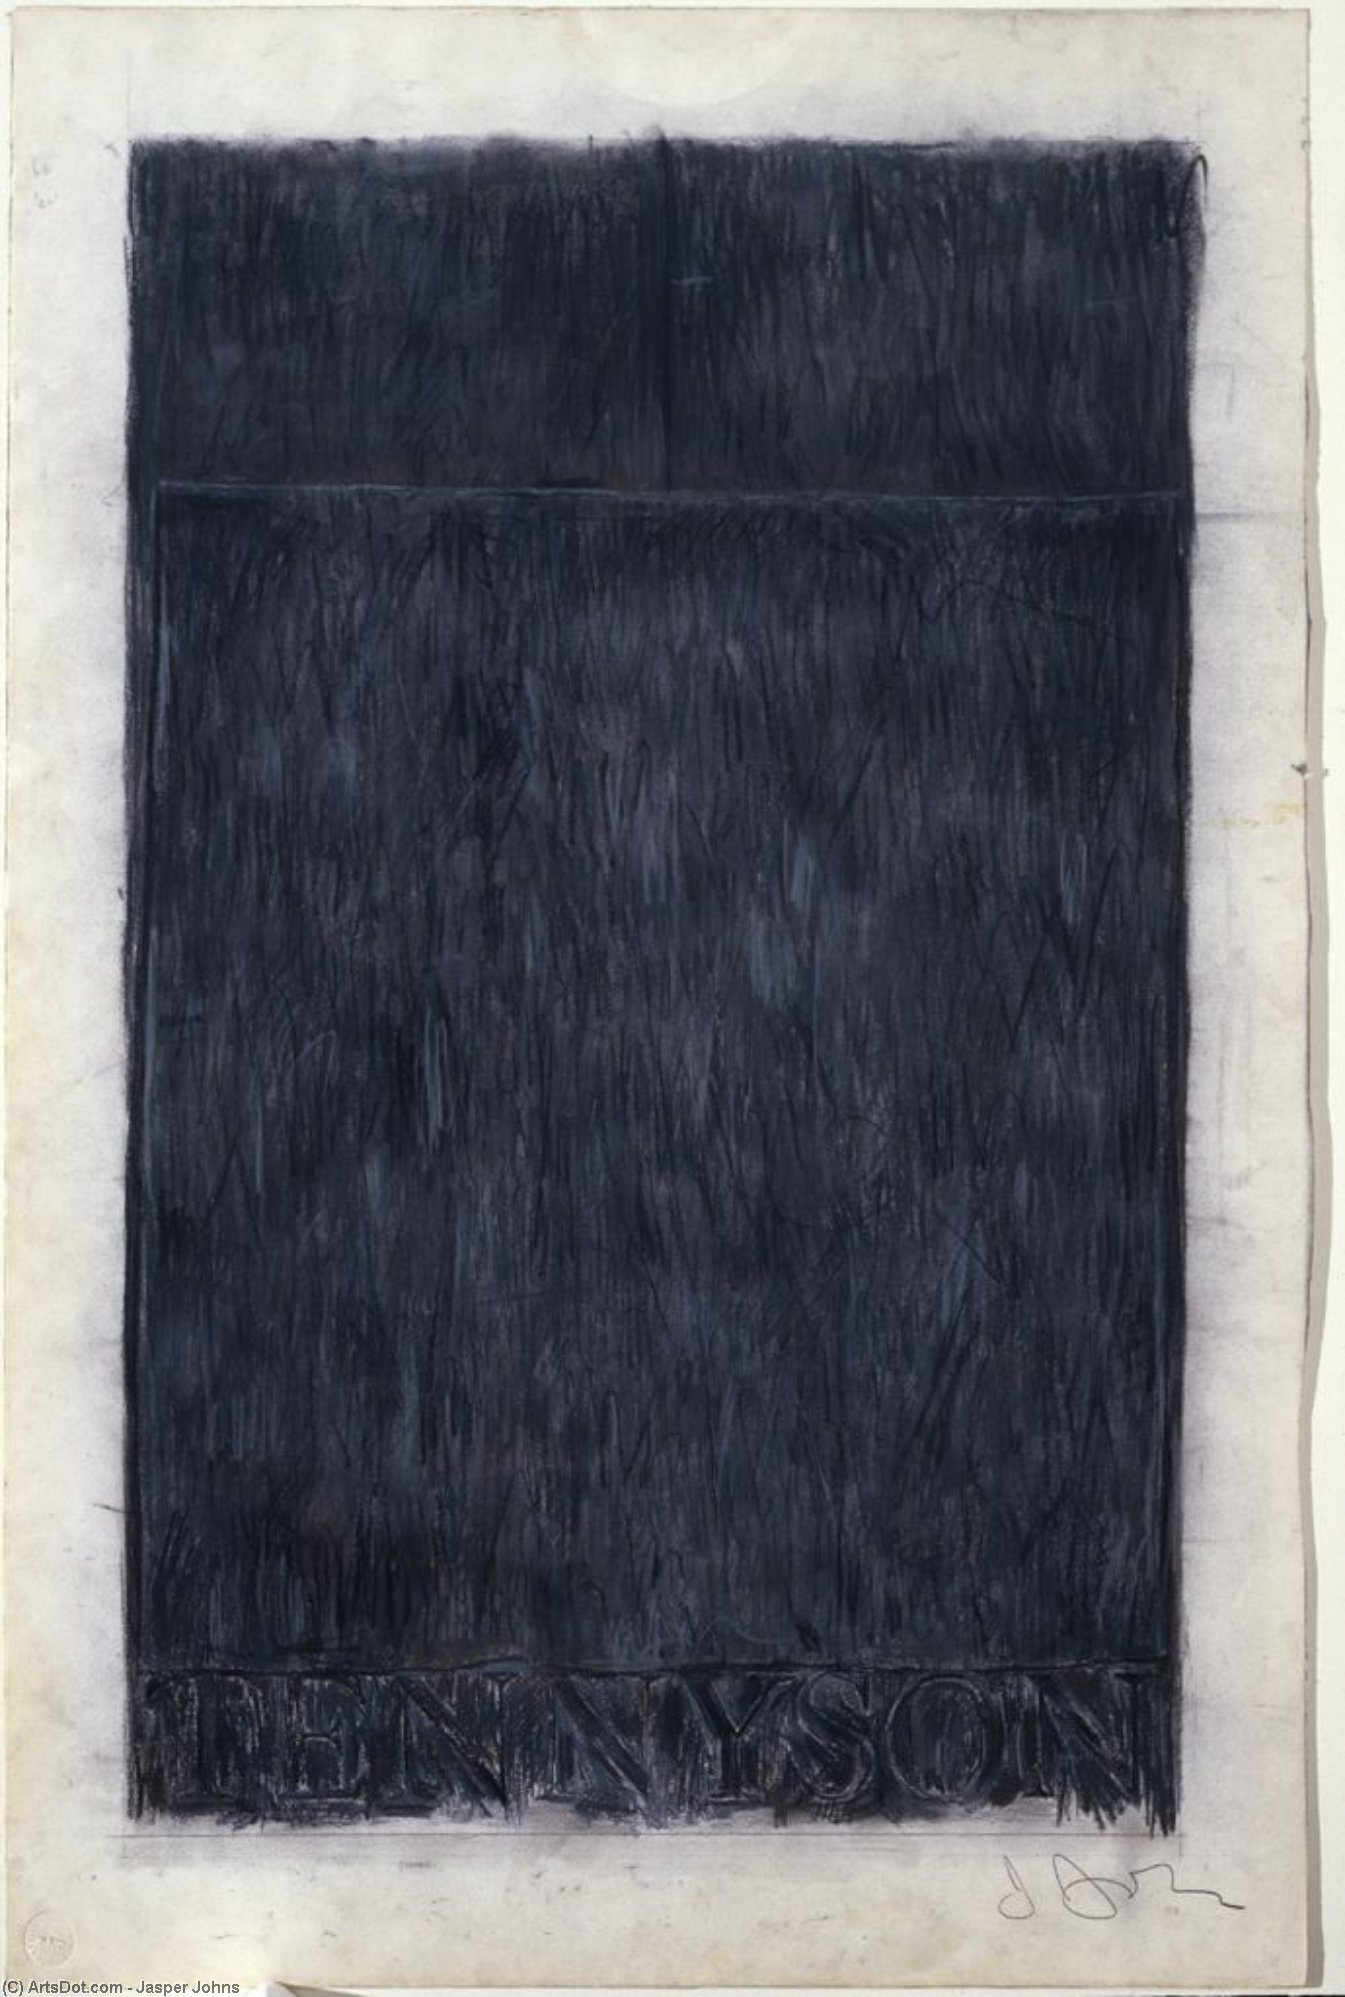 Tennyson, 1959 by Jasper Johns